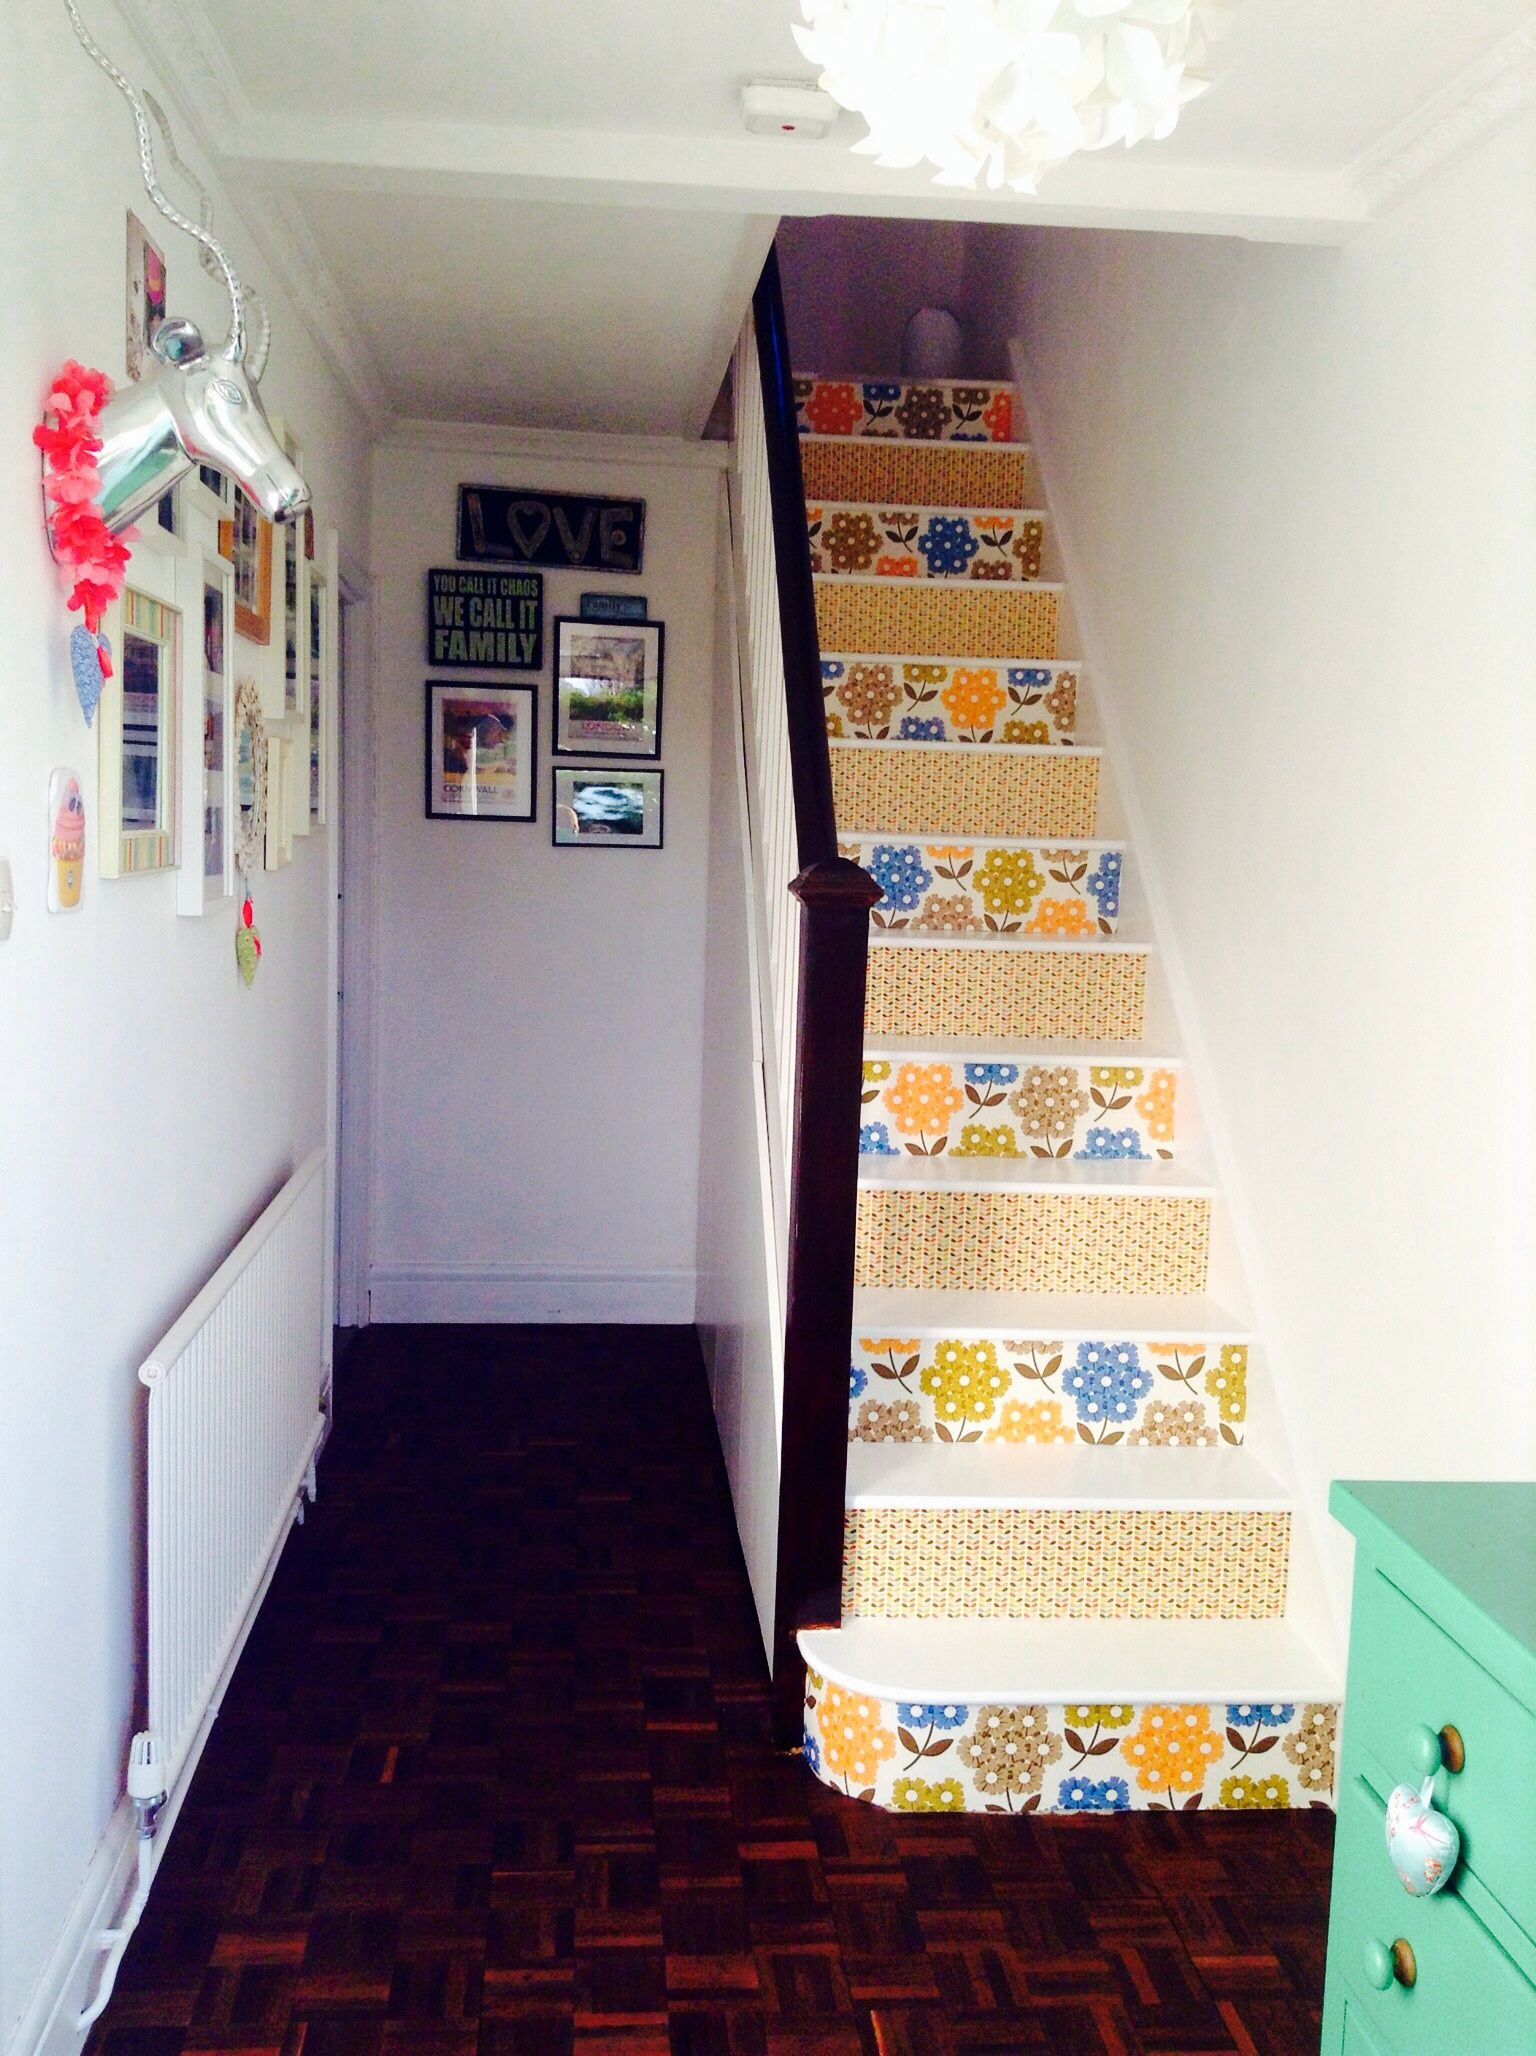 Wallpaper stair risers , I used wrapping paper as a